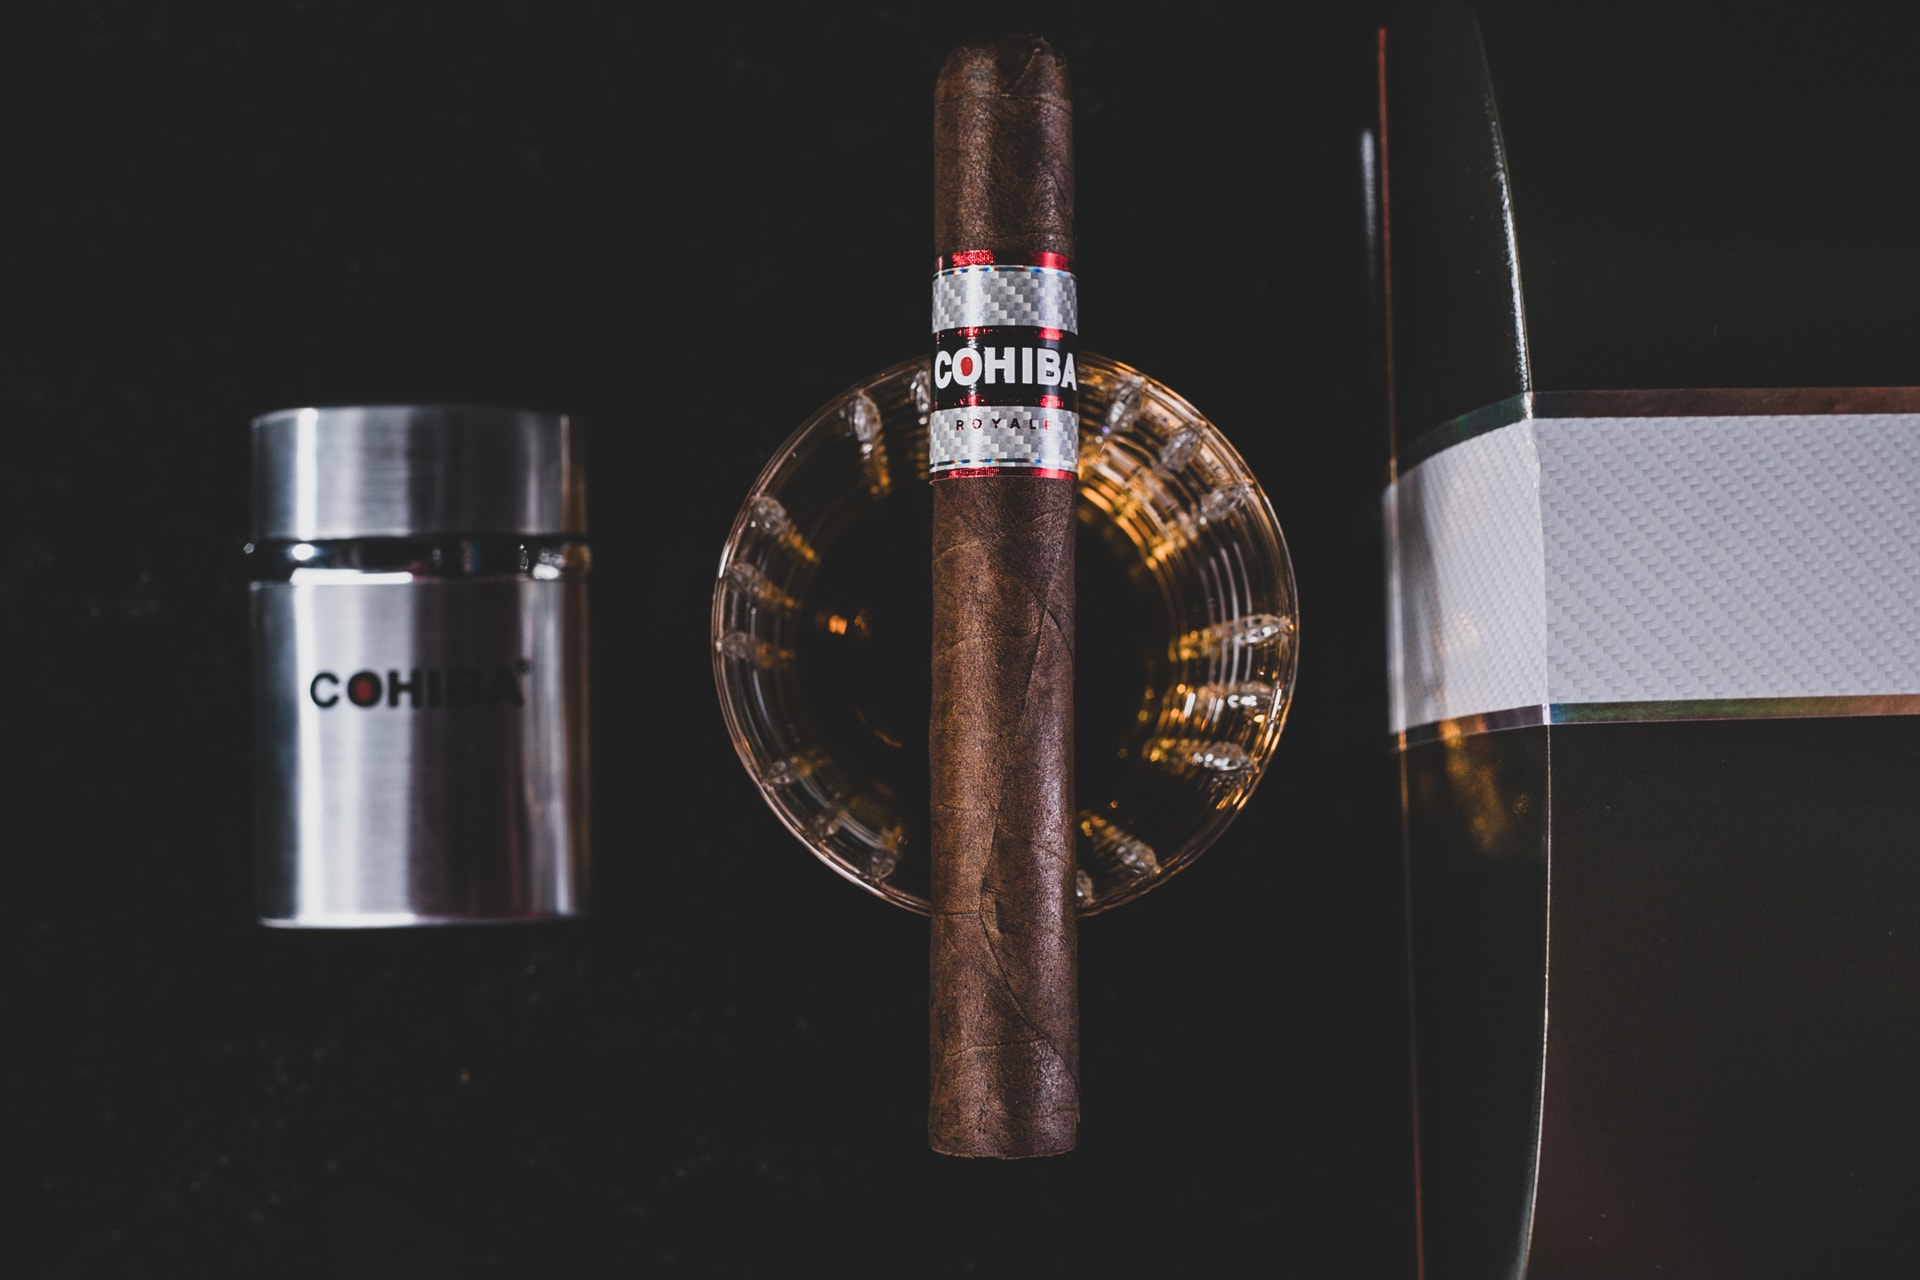 Best Drink Pairings For Cohiba Cigars Featured Image